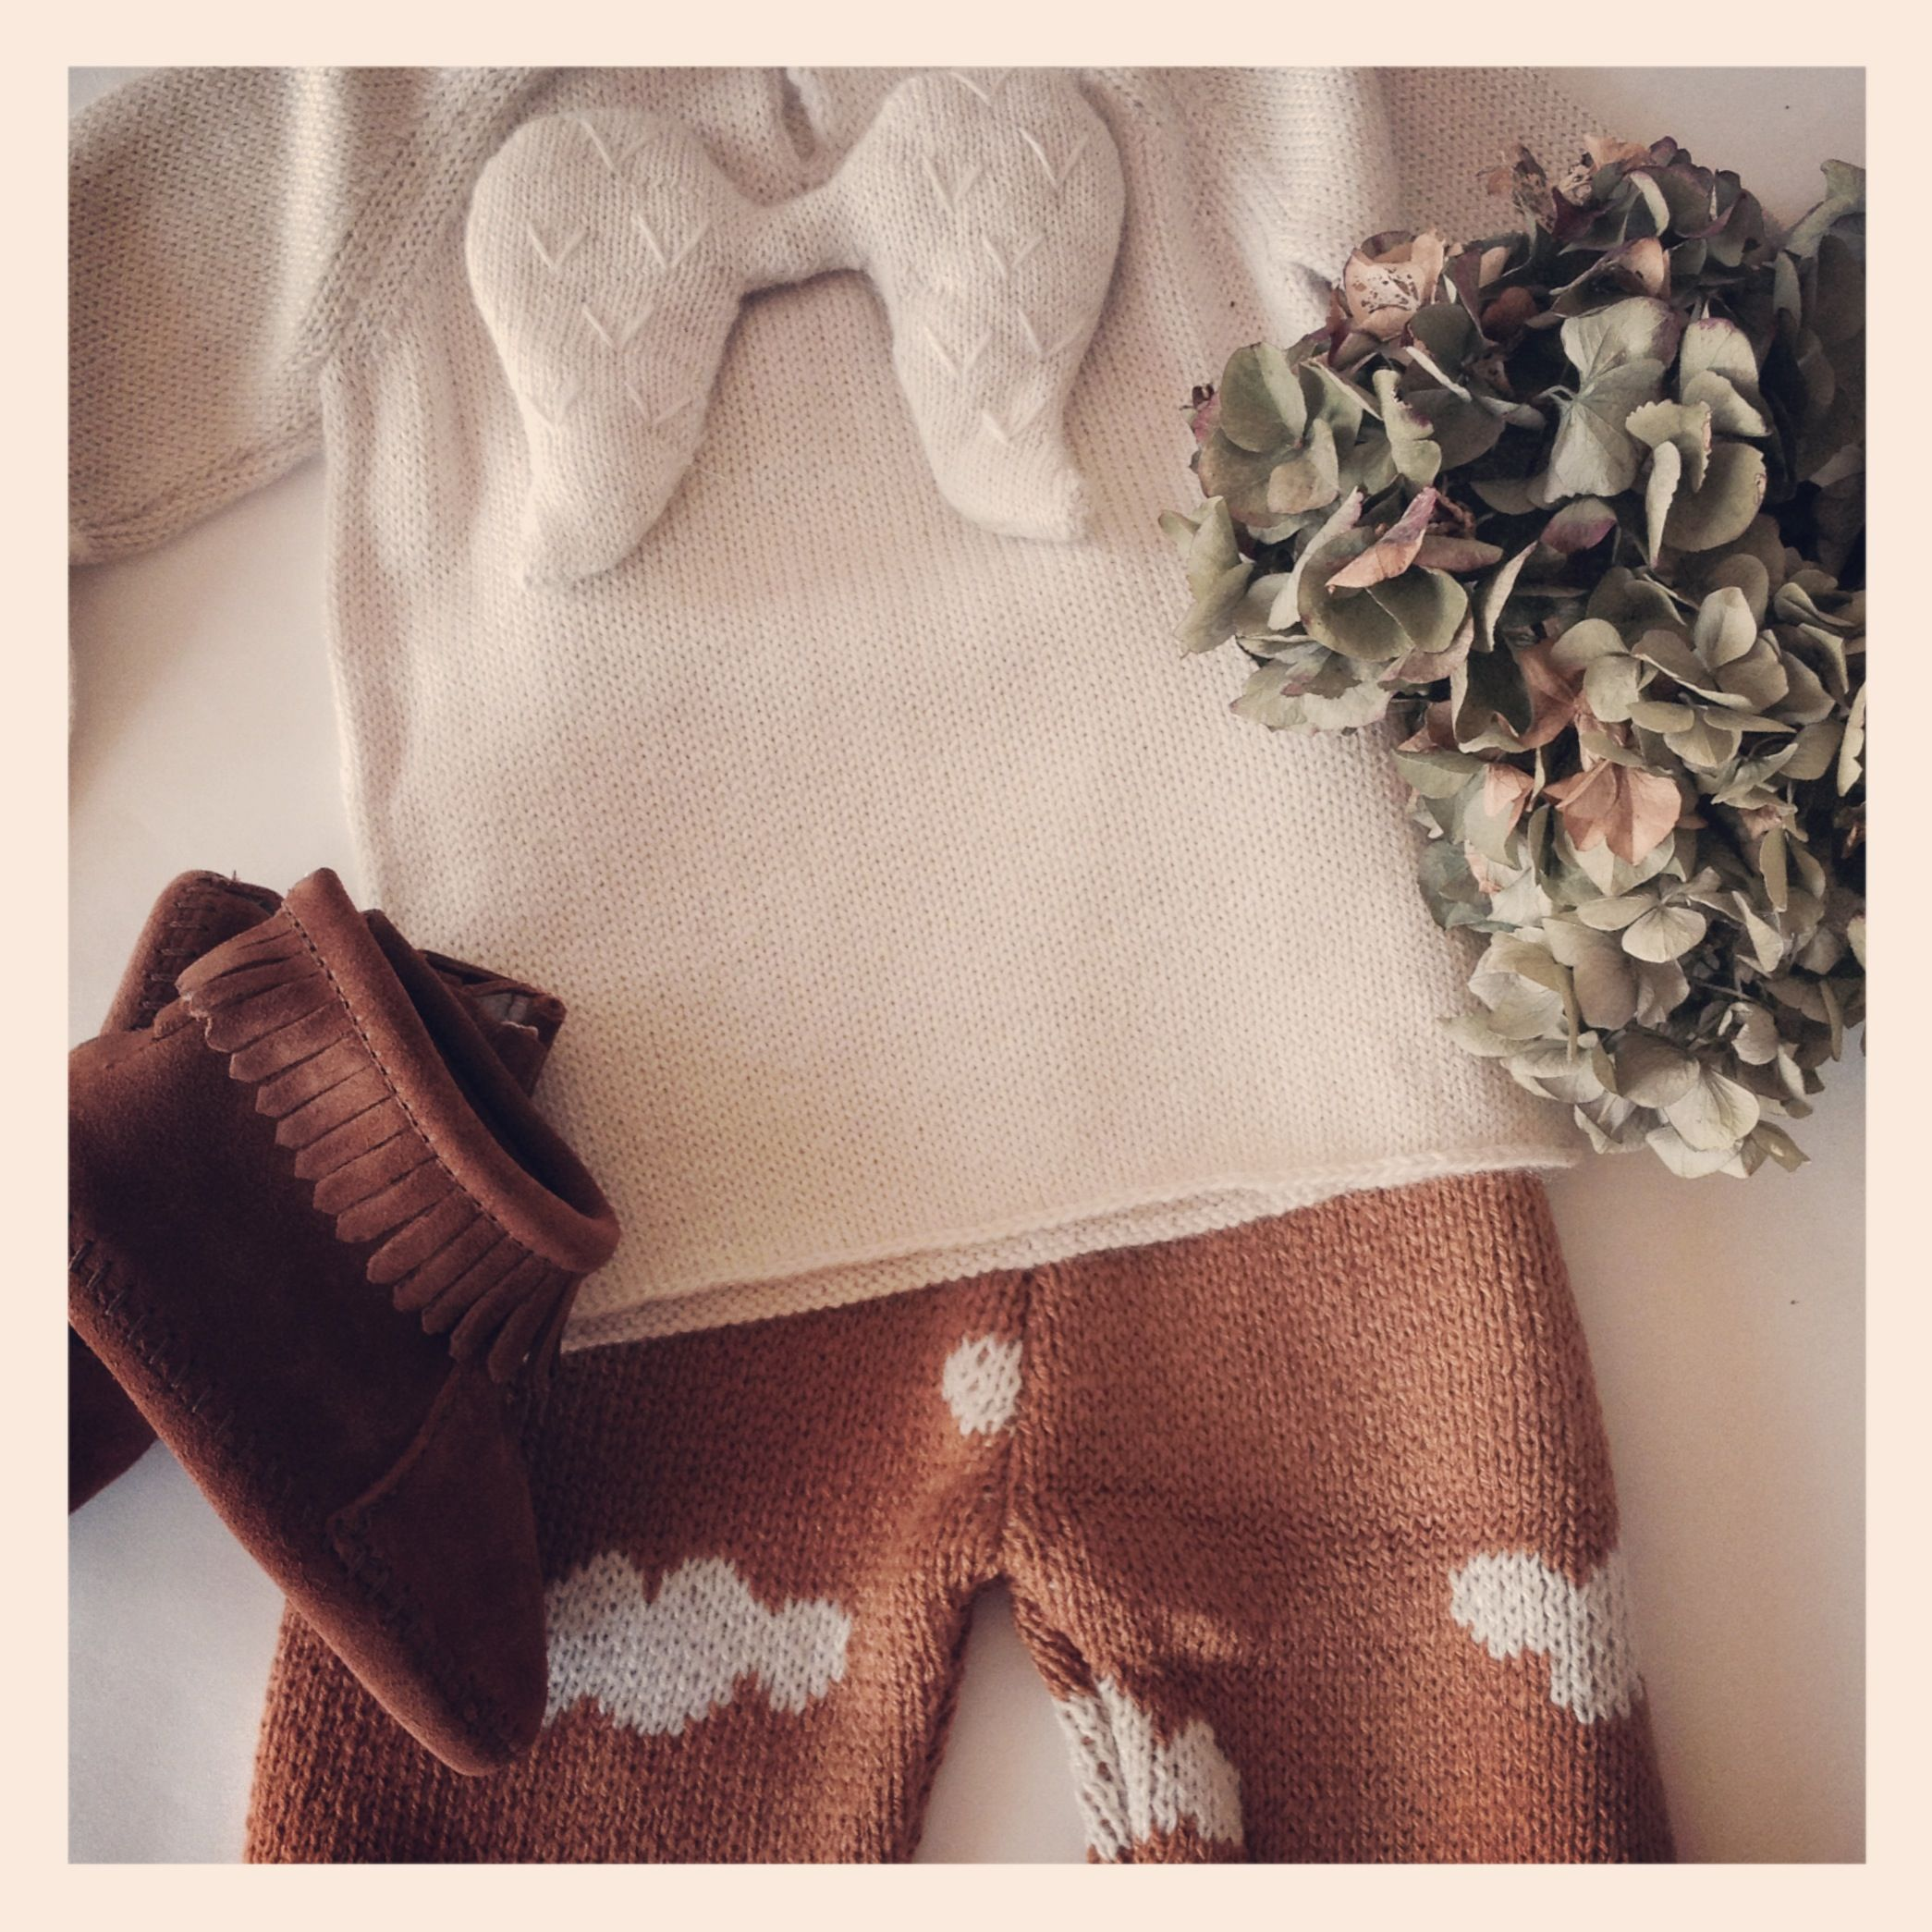 Baby Girl !!! Sweater by Oeuf NYC - Pants by Bobo Choses - Shoes by Minnetonka